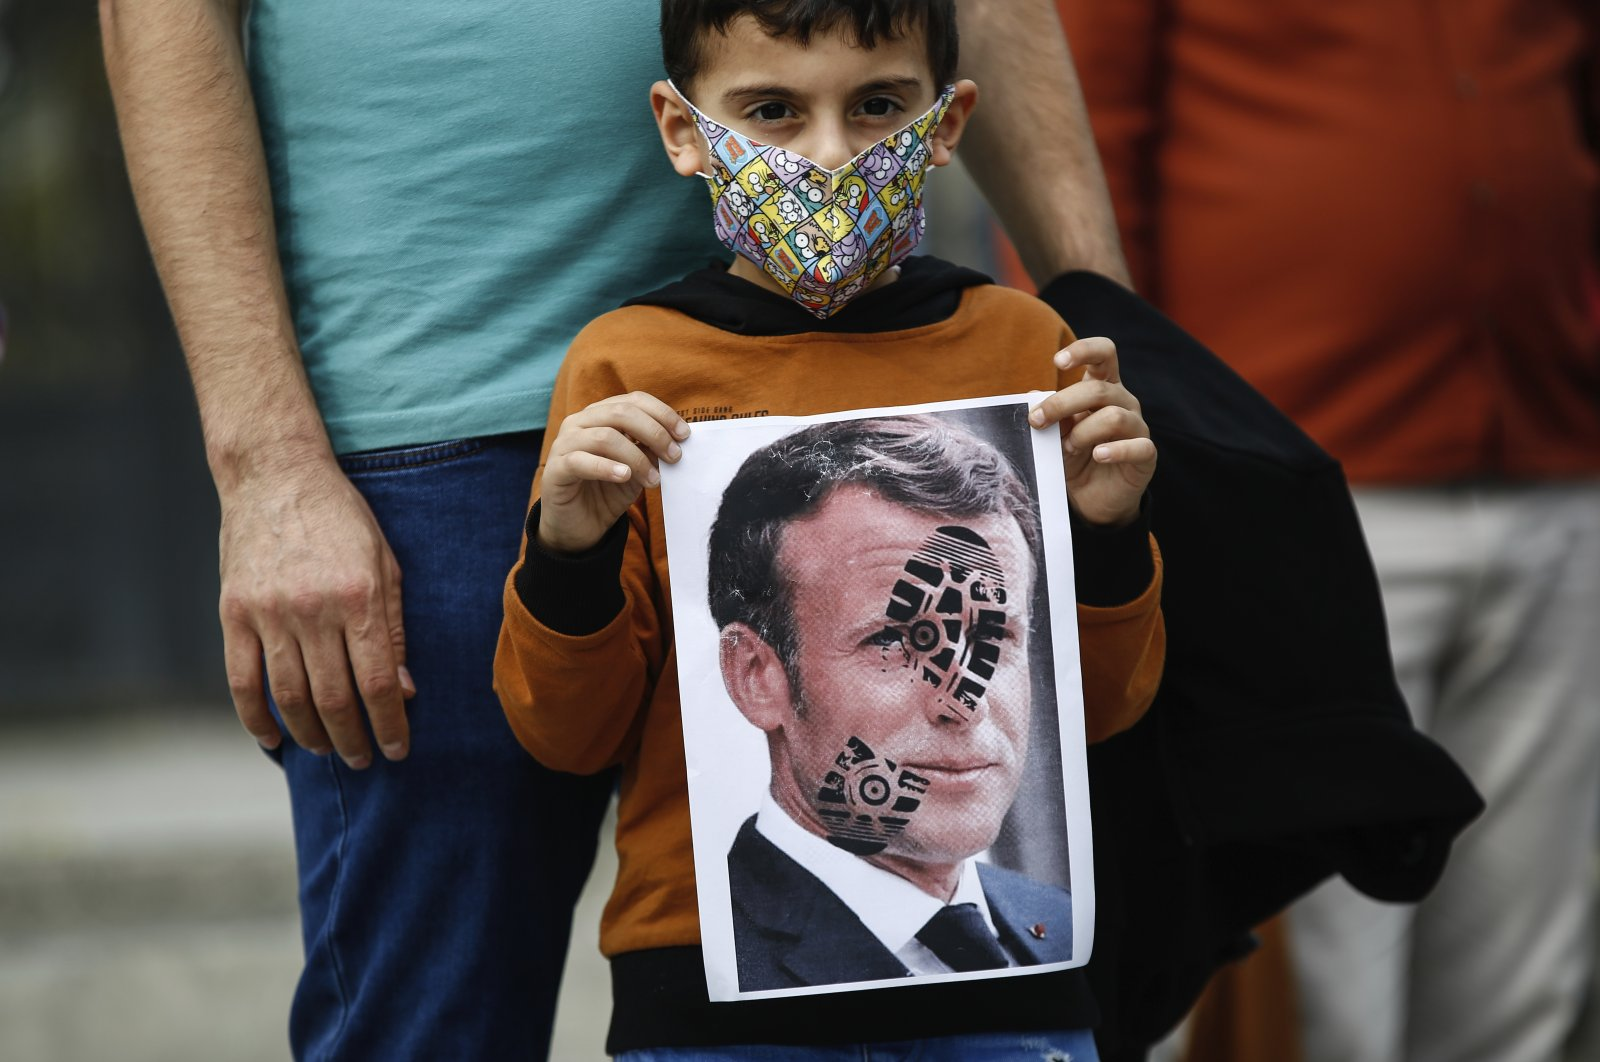 A child holds a photograph of France's President Emmanuel Macron, stamped with a shoe mark, during a protest against France in Istanbul, Oct. 25, 2020. (AP)